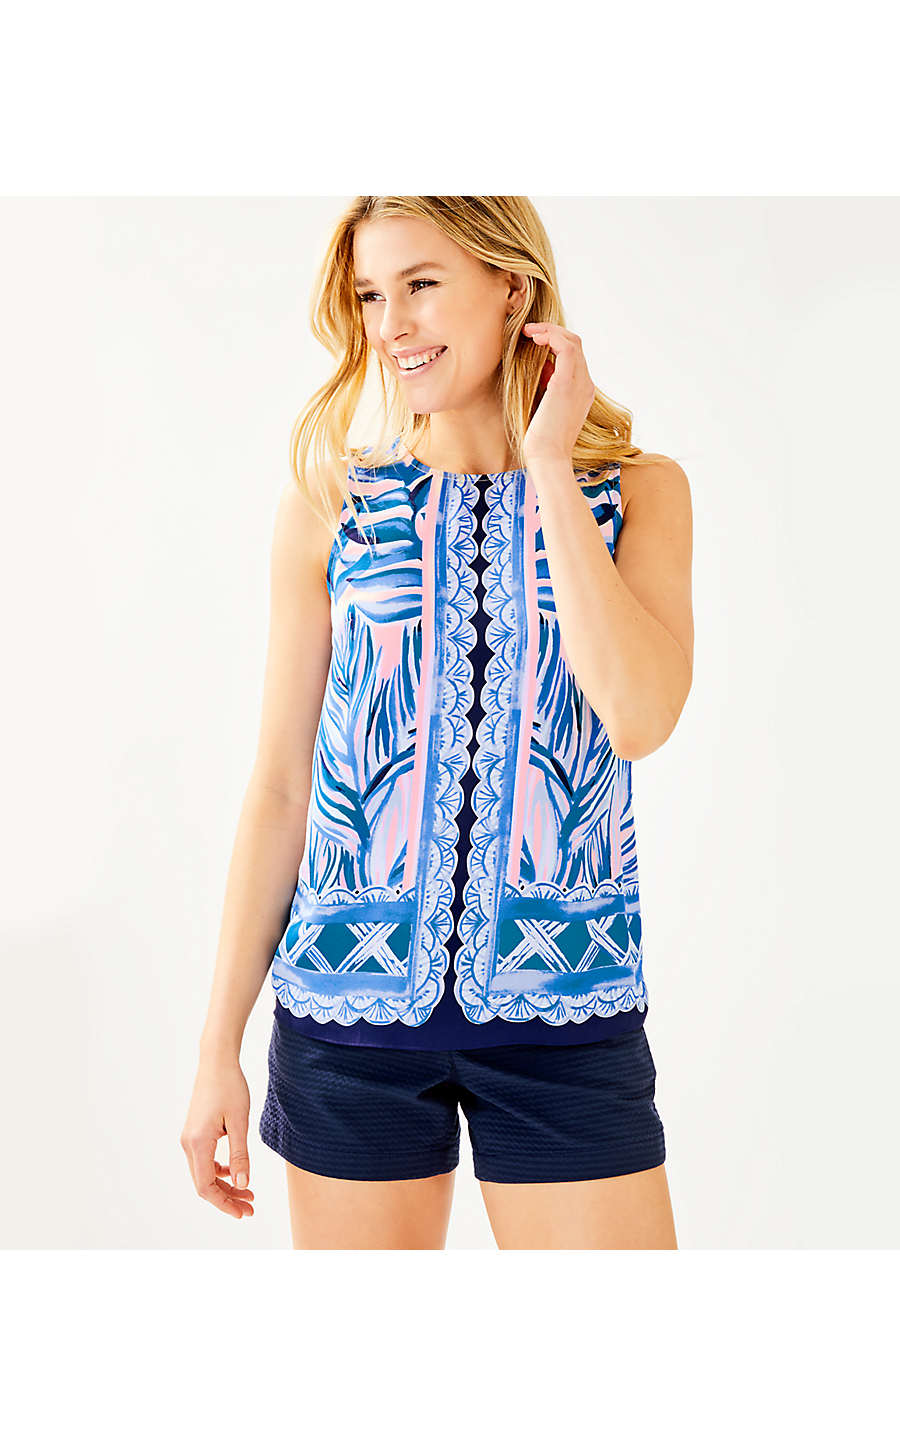 a3dfa7ce60663c IONA TOP - HEAT WAVE ENGINEERED - Lilly Pulitzer Store - Life's a Beach